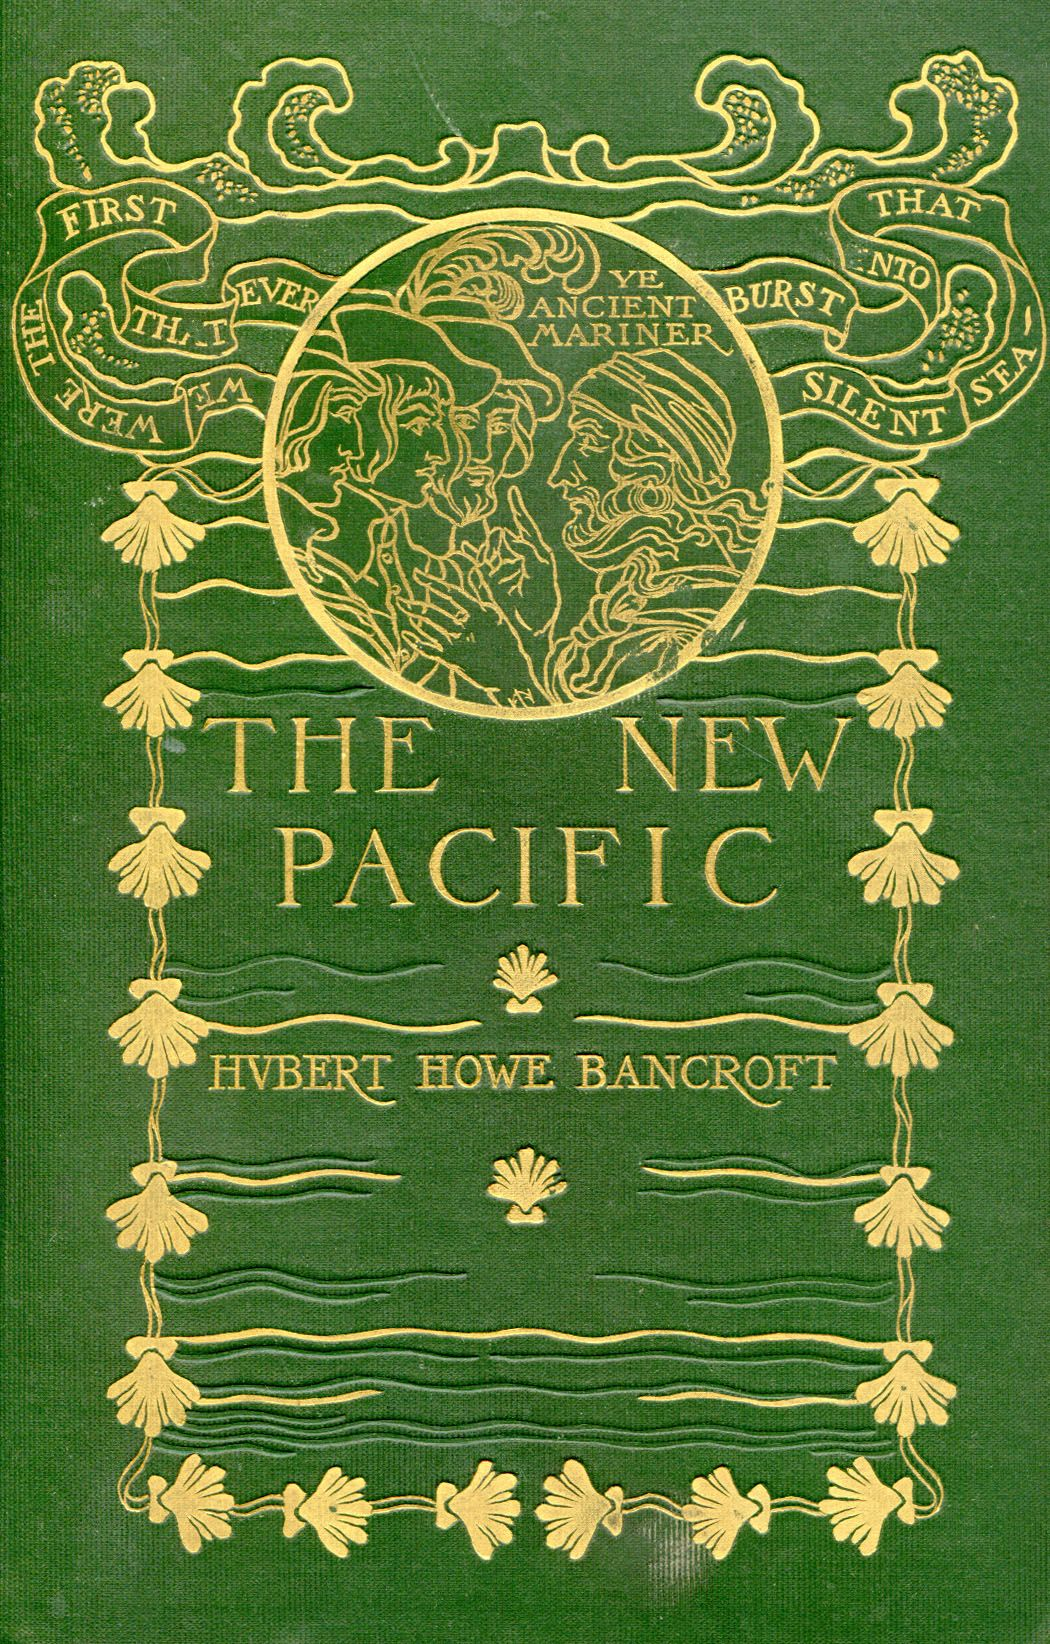 The New Pacific by Hubert Howe Bancroft, New York: The Bancroft Company,1900, cover design by Margaret Armstrong [?]